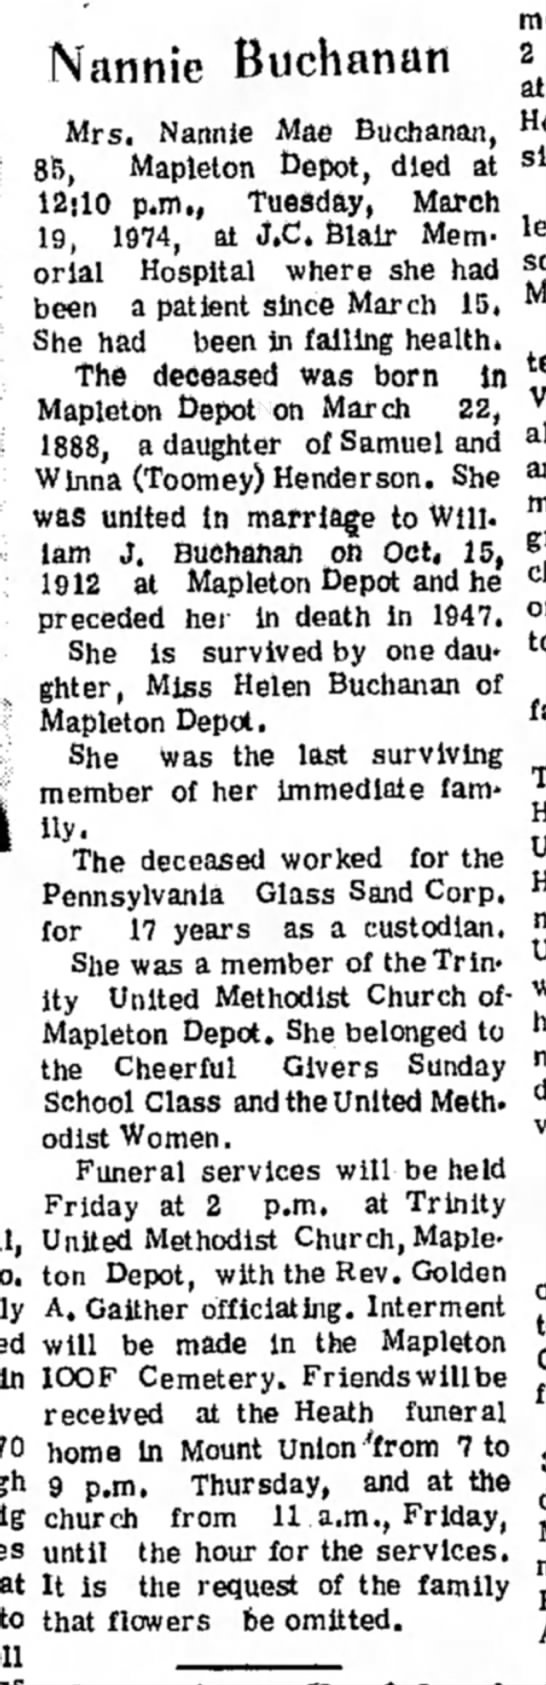 Nannie Buchanan-Obit-TDN-p.2-20 Mar 1974